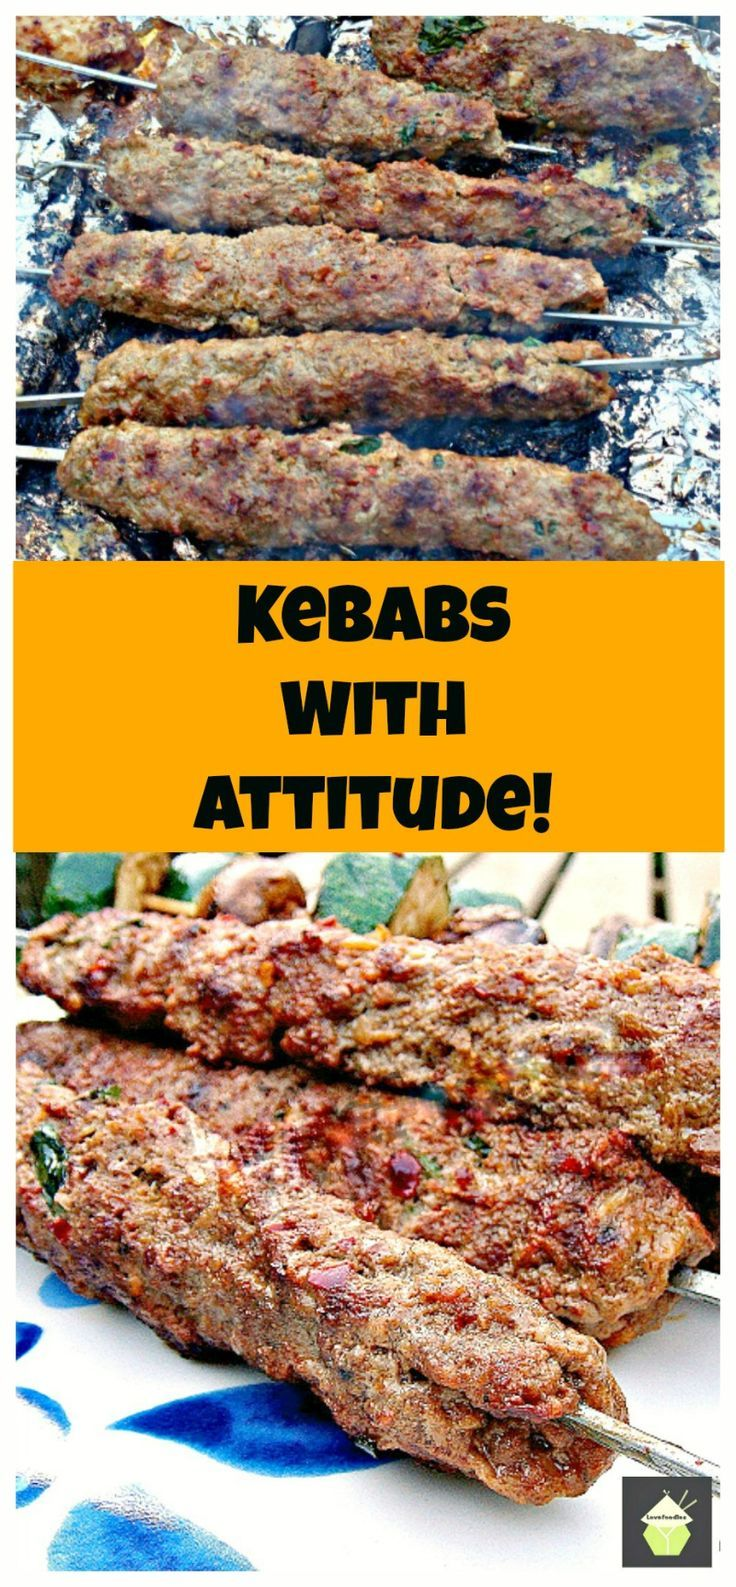 Kebabs With Attitude! These are a spicy, moist kebab, full of flavor and perfect for grilling!